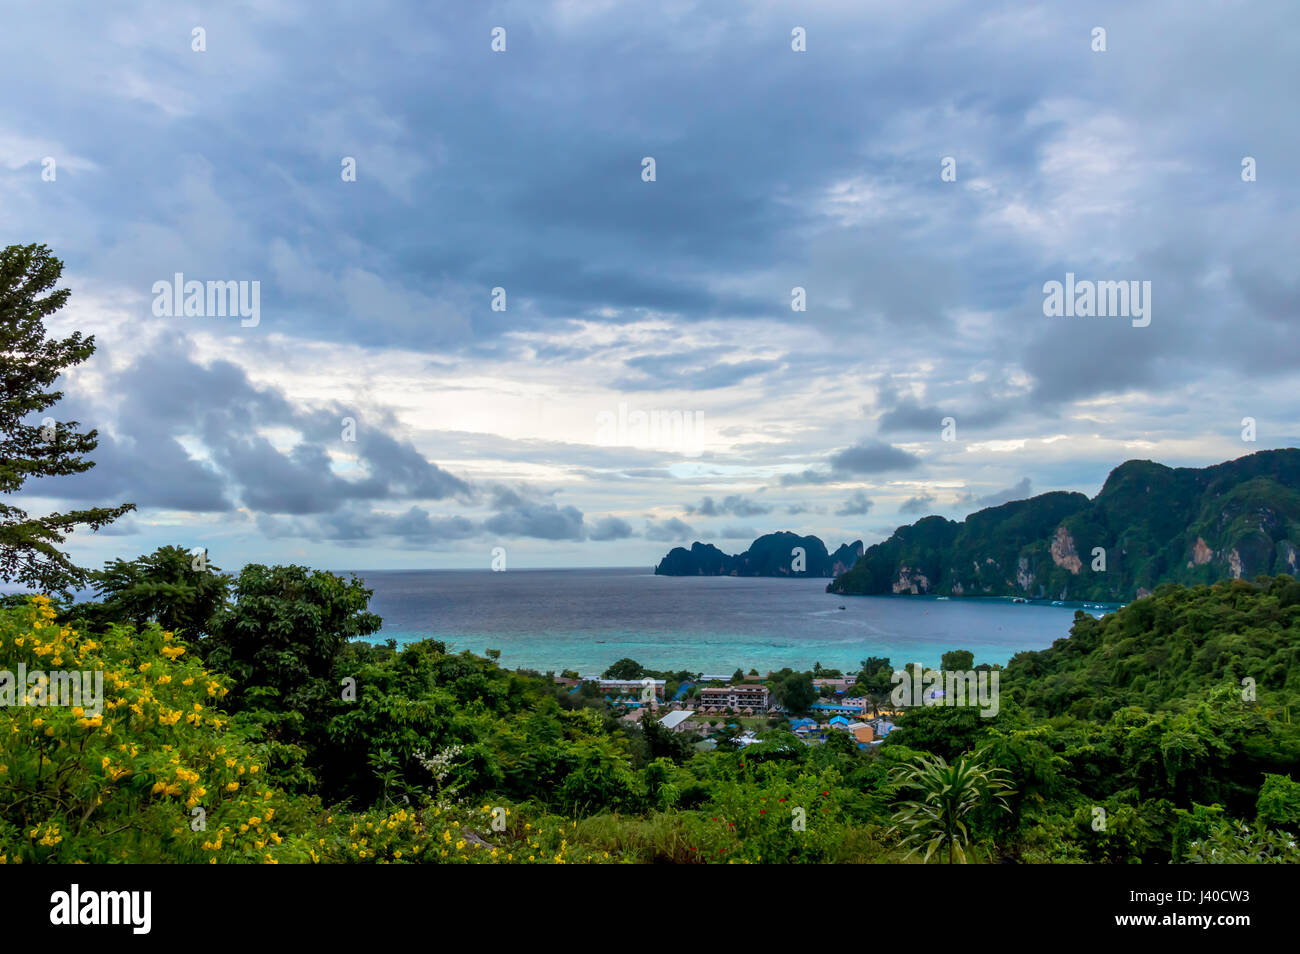 Scenics view from island viewpoint against bay and clouds - Stock Image